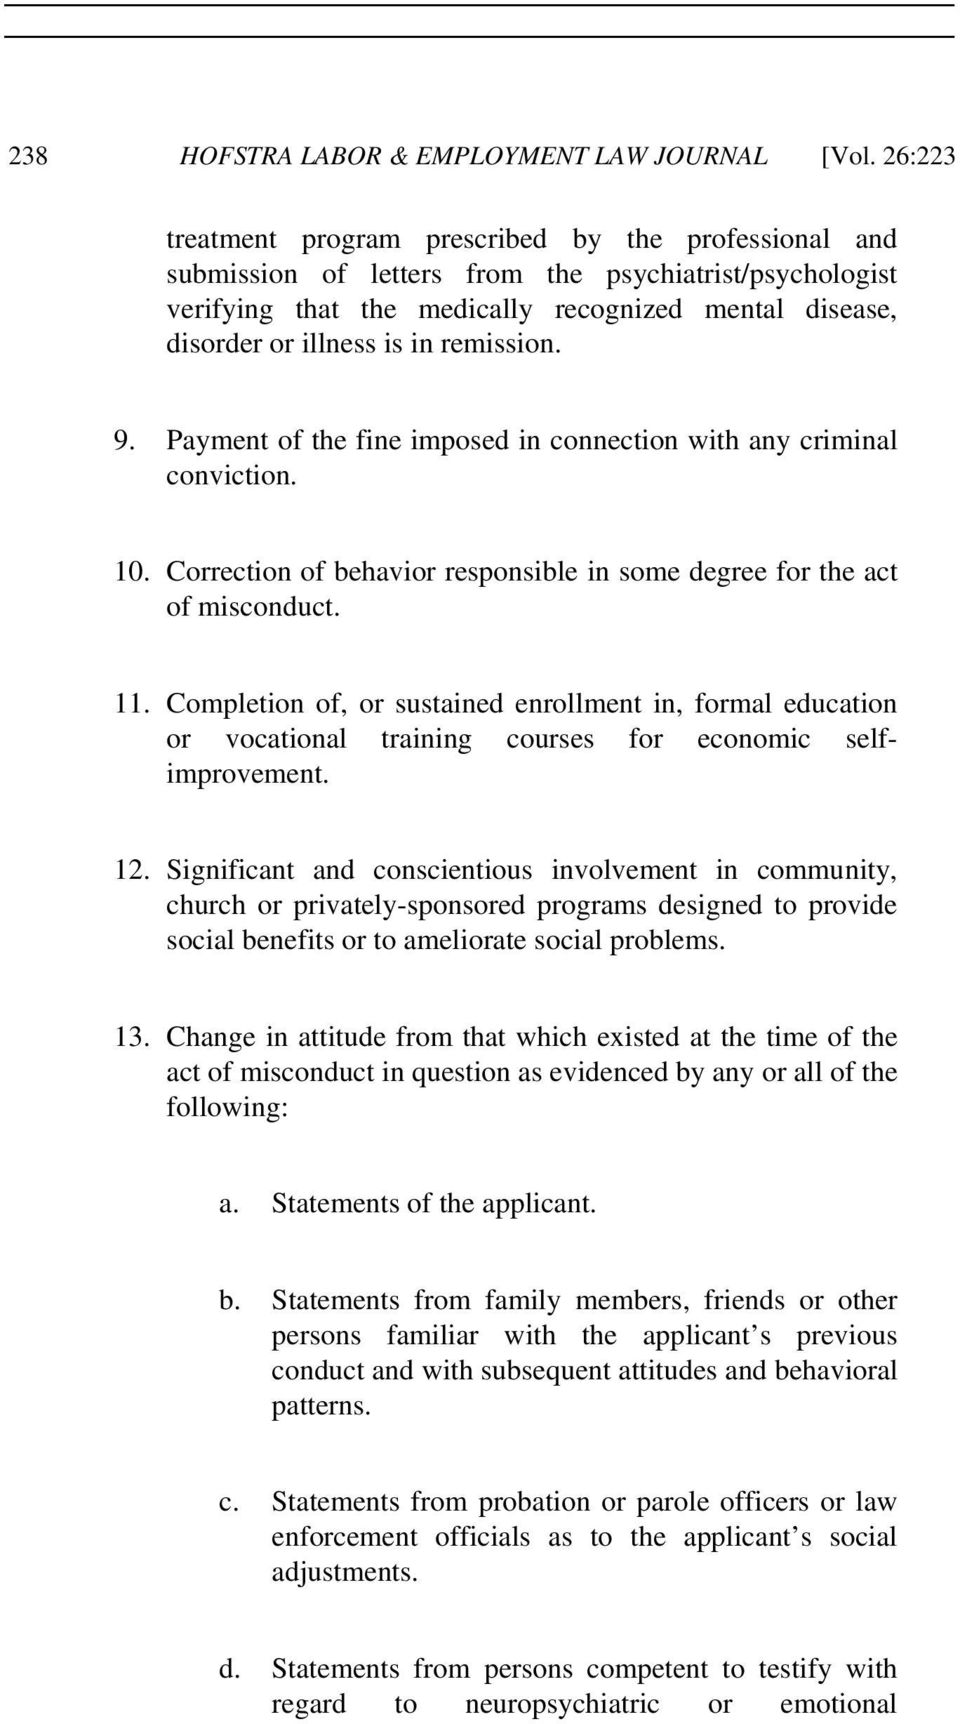 remission. 9. Payment of the fine imposed in connection with any criminal conviction. 10. Correction of behavior responsible in some degree for the act of misconduct. 11.